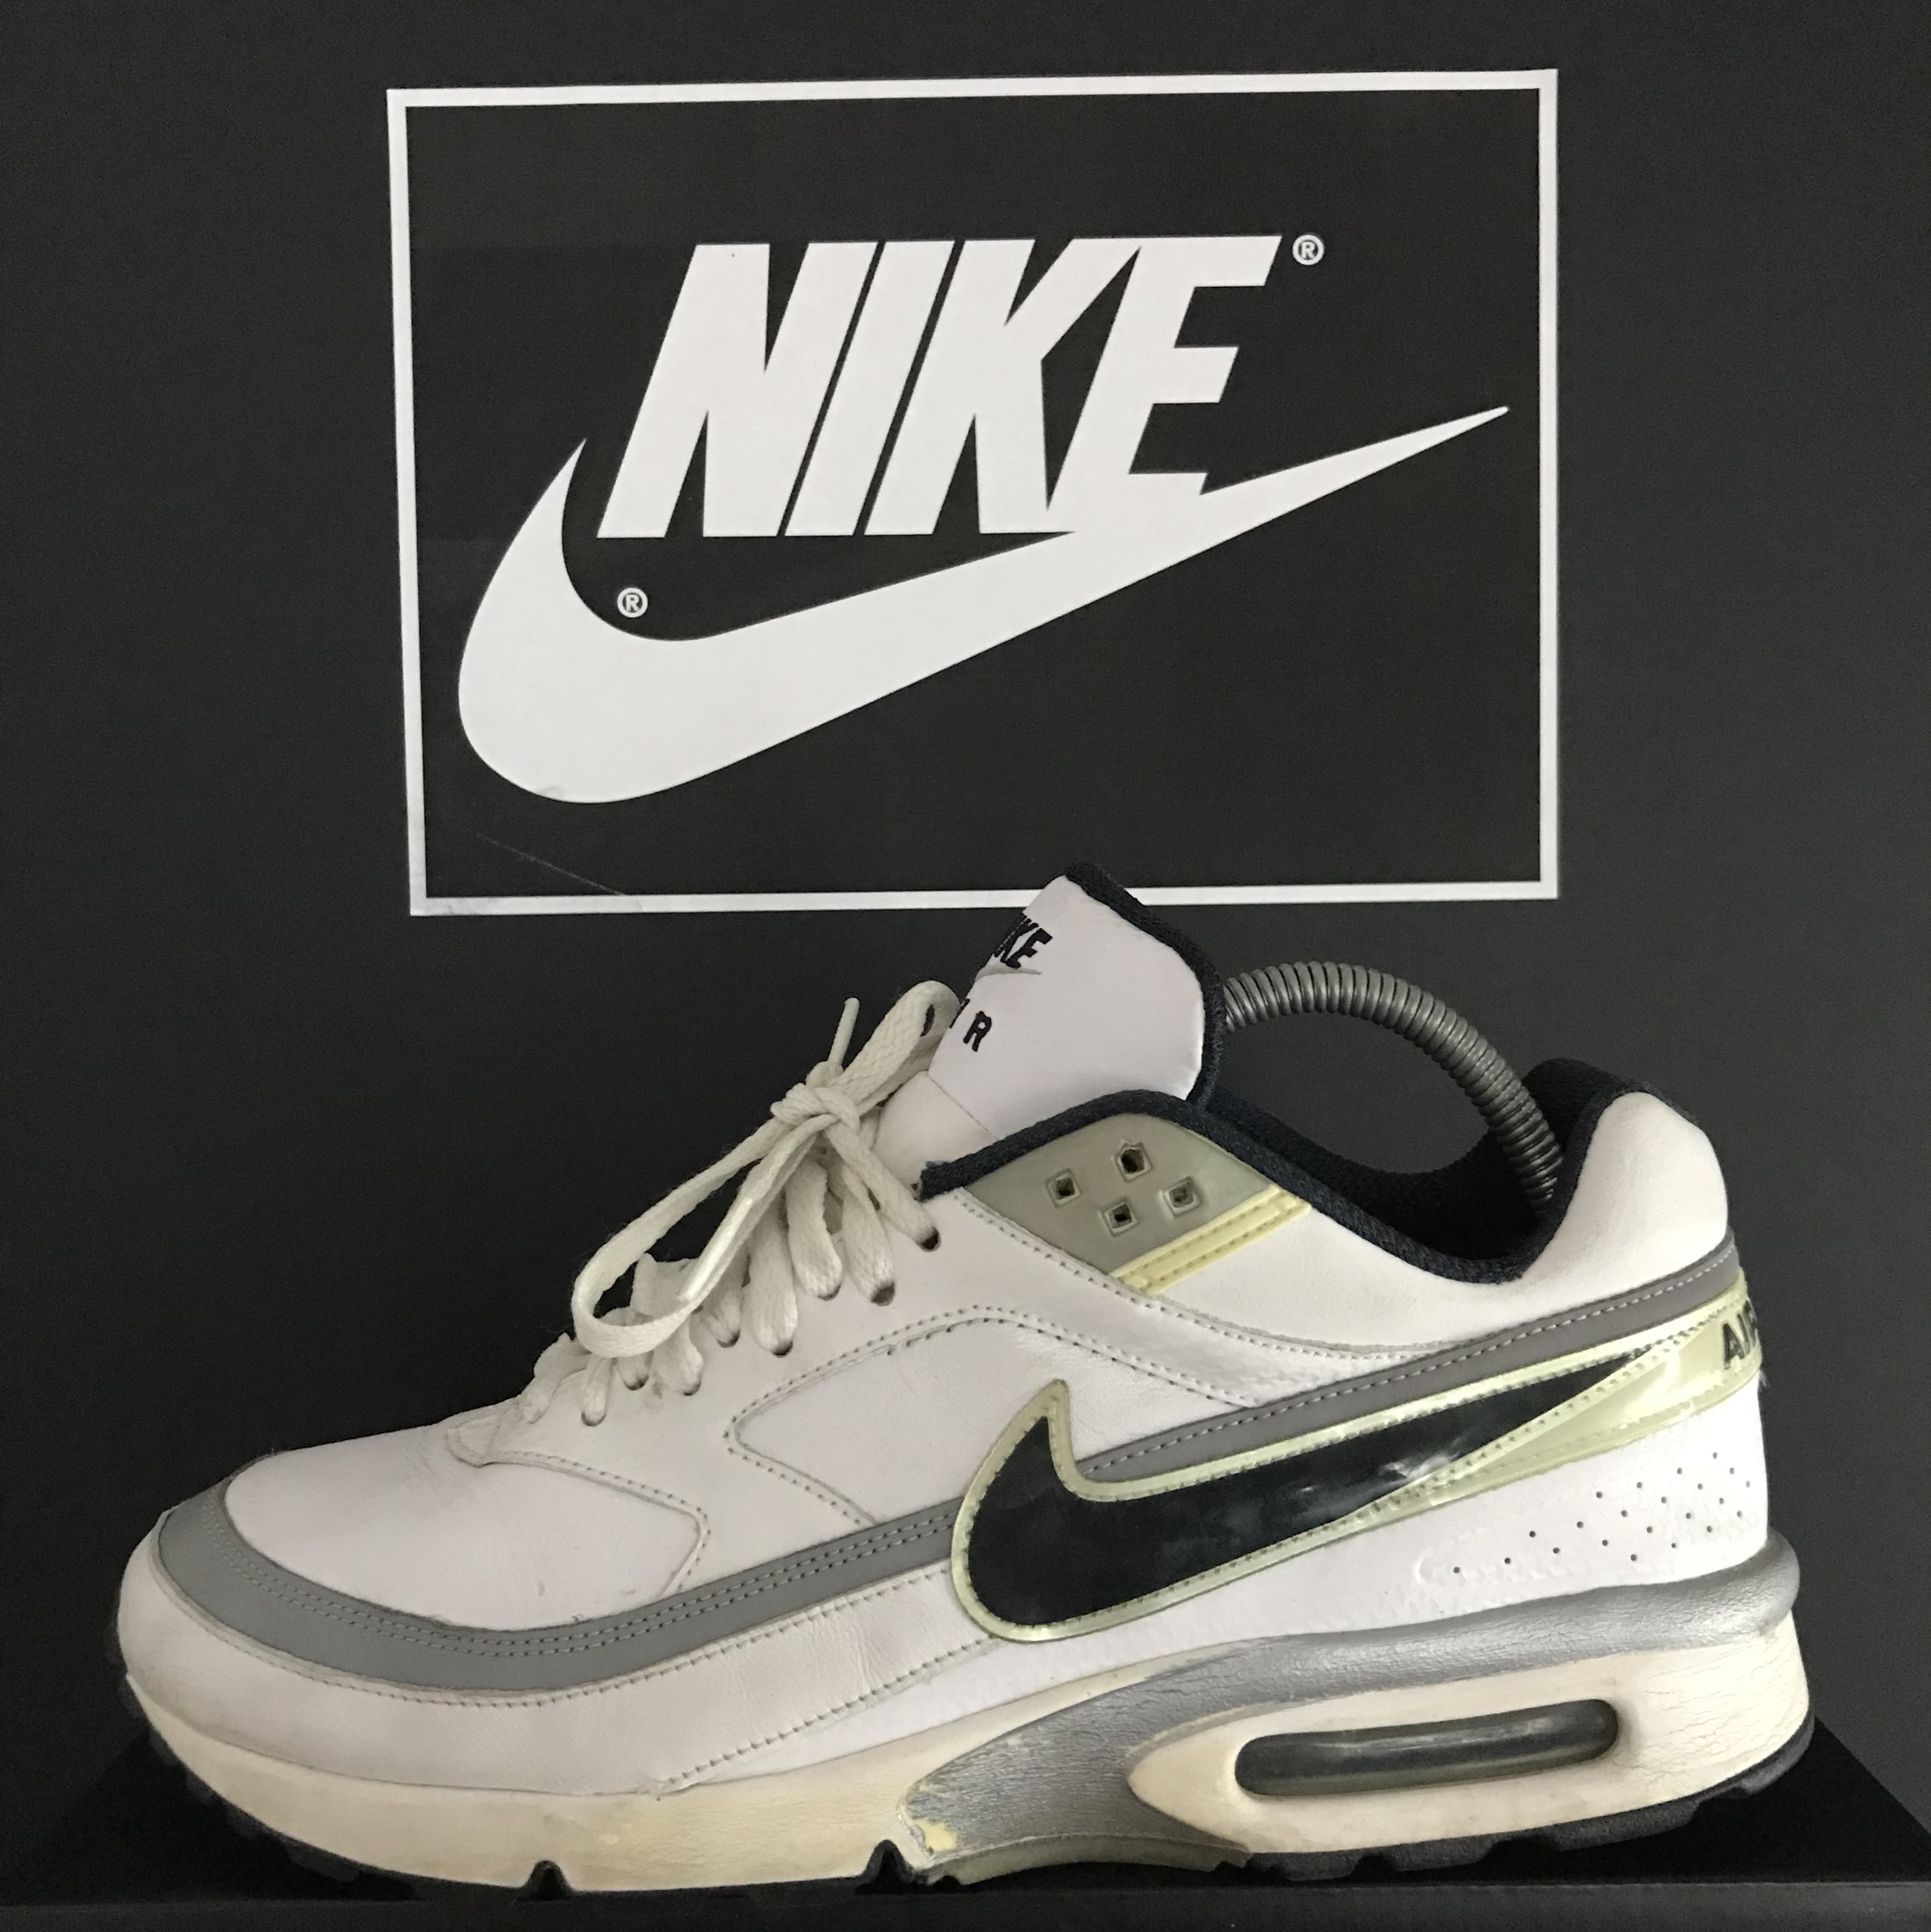 2008 Nike Air Max BW Leather Edition Size 9 UK In Depop